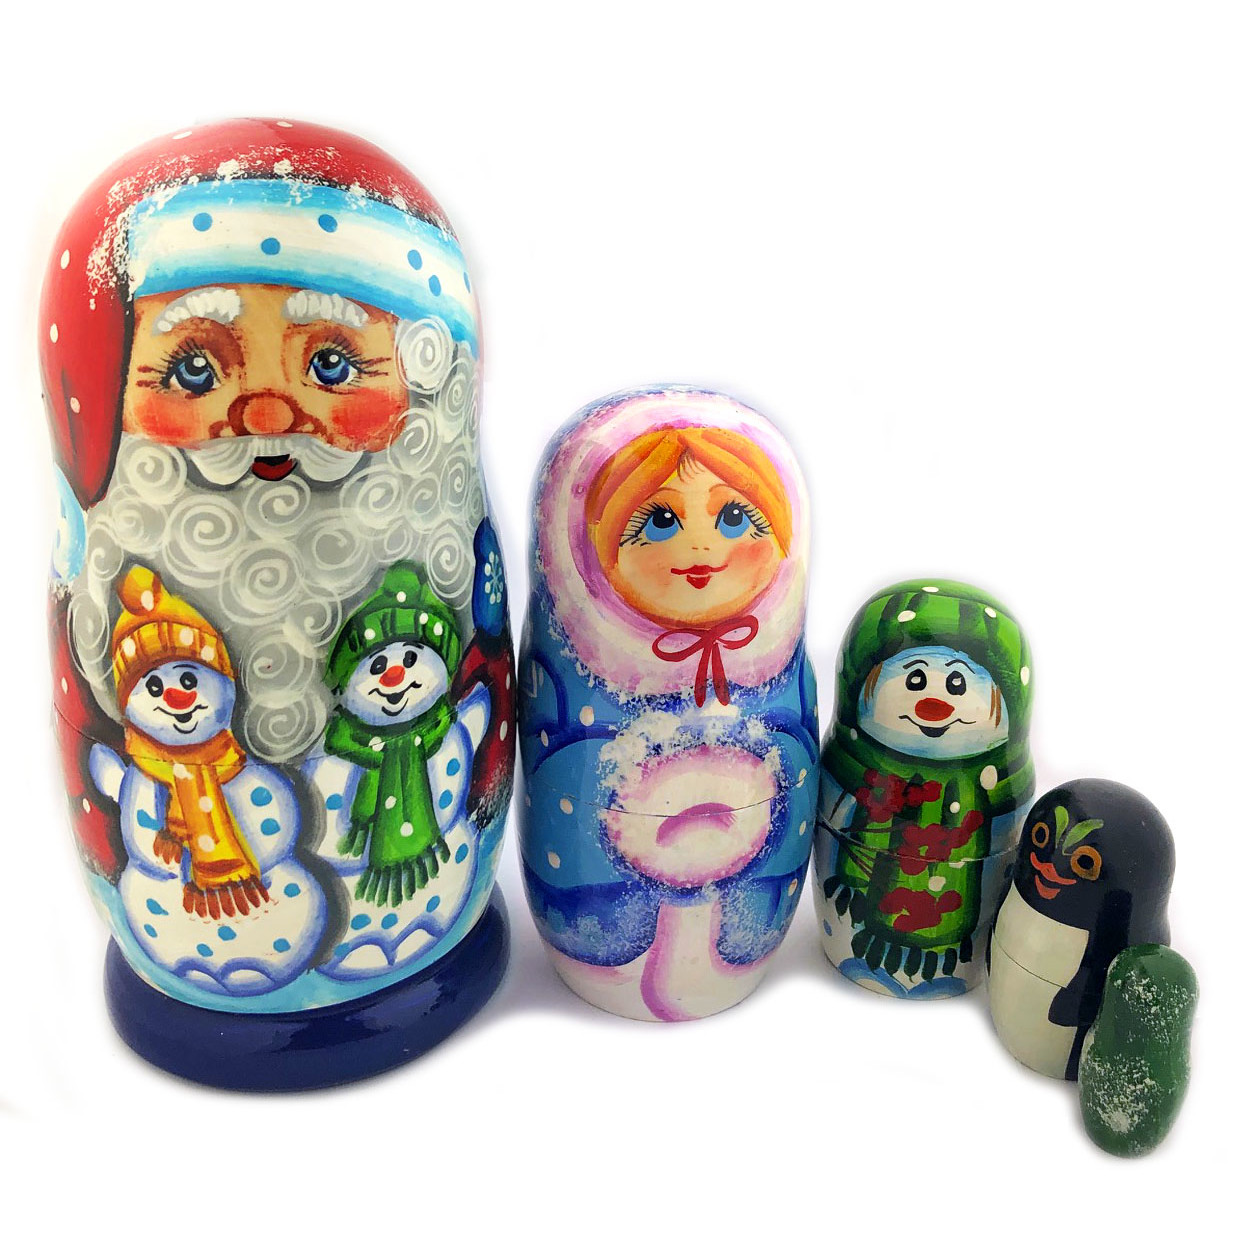 Hand Painted Matryoshka Doll With 5 Nested 5 Inch Tall 4 Inch